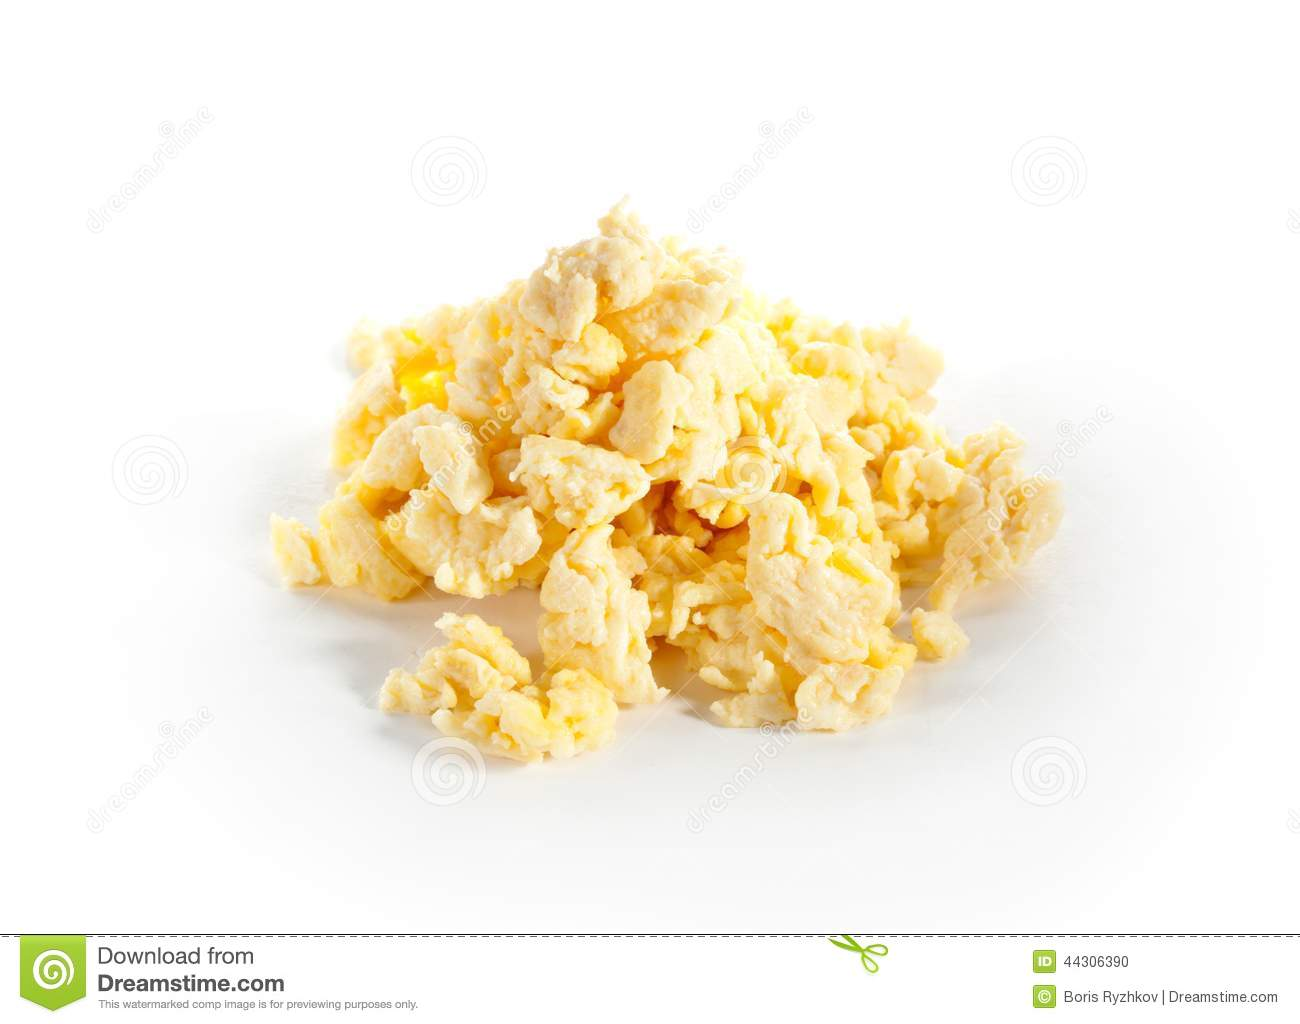 Download Scrambled Eggs Stock Photo Image Of Cooked Brunch Ingredient